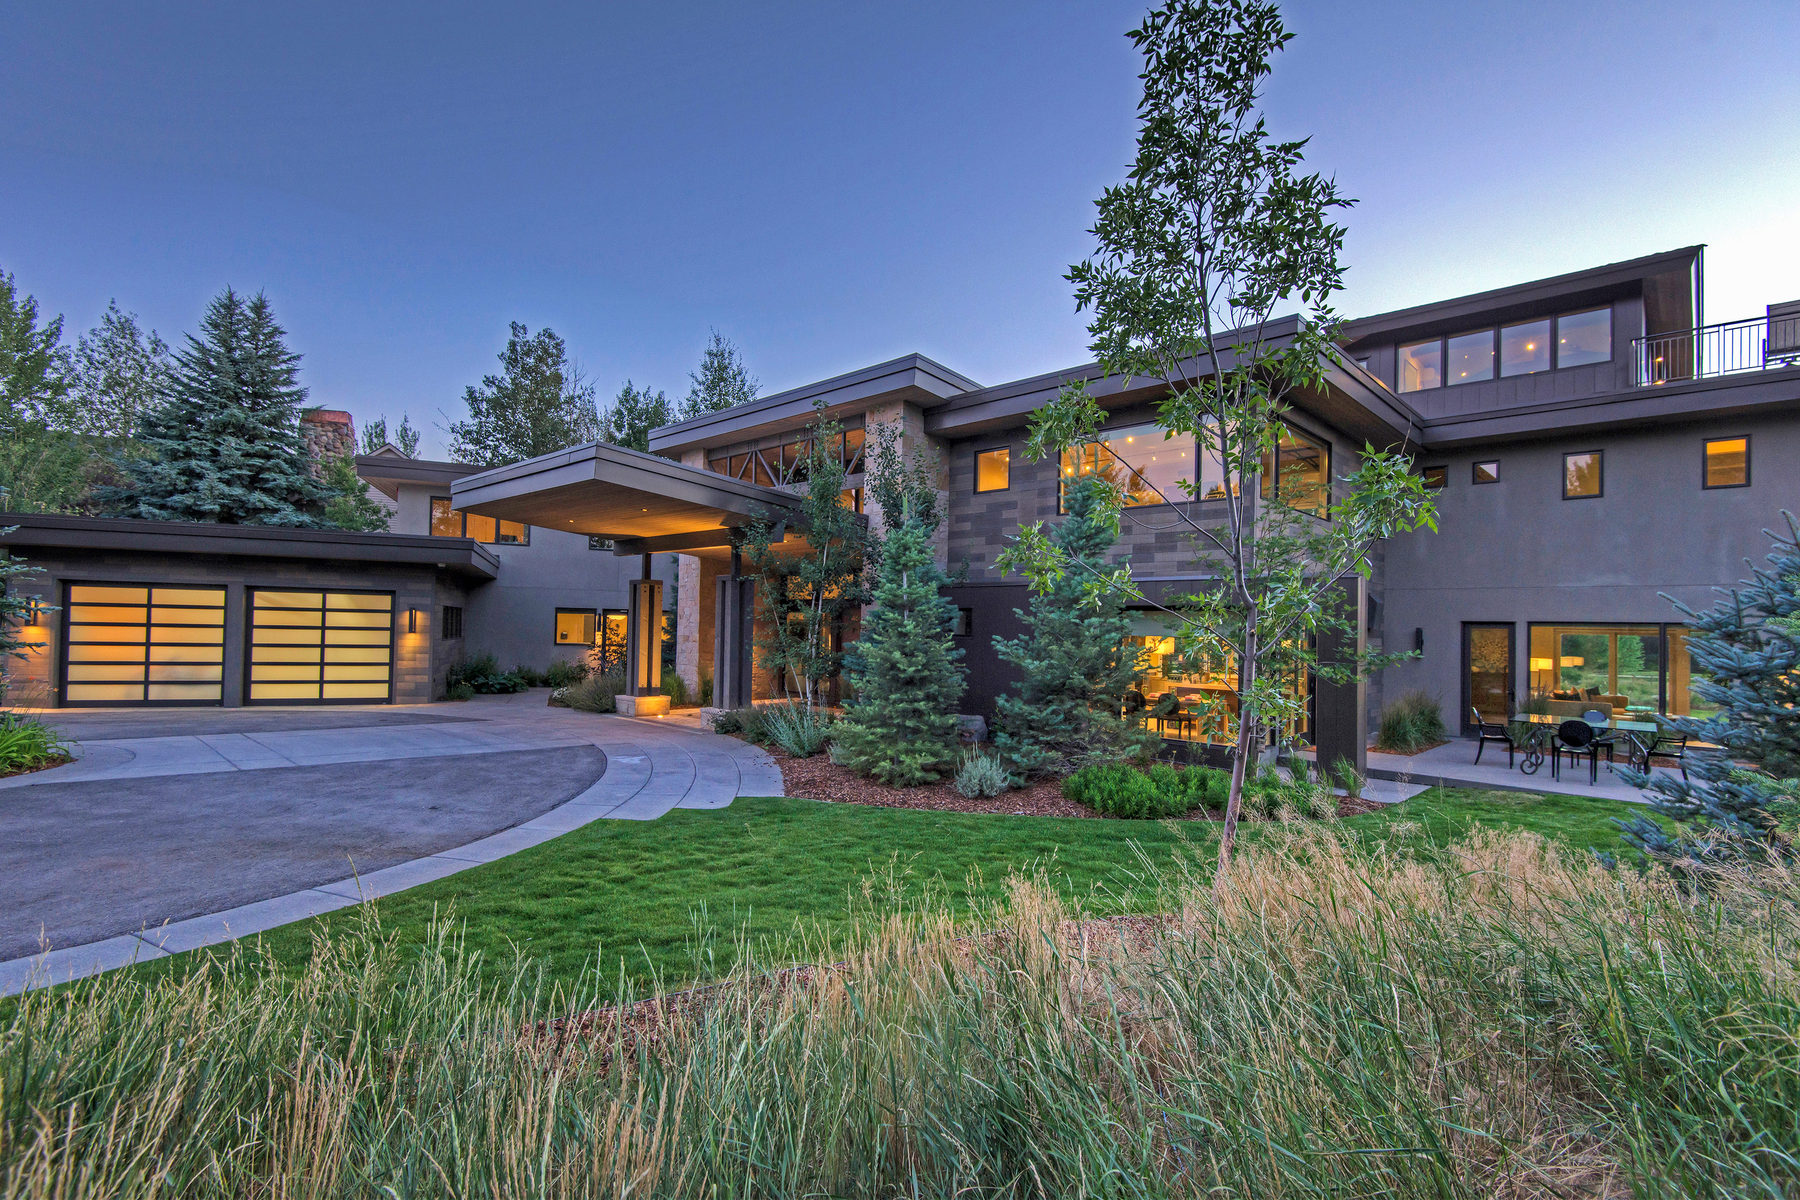 Casa Unifamiliar por un Venta en Exquisite Contemporary Estate 1334 Lucky John Dr Park City, Utah 84060 Estados Unidos